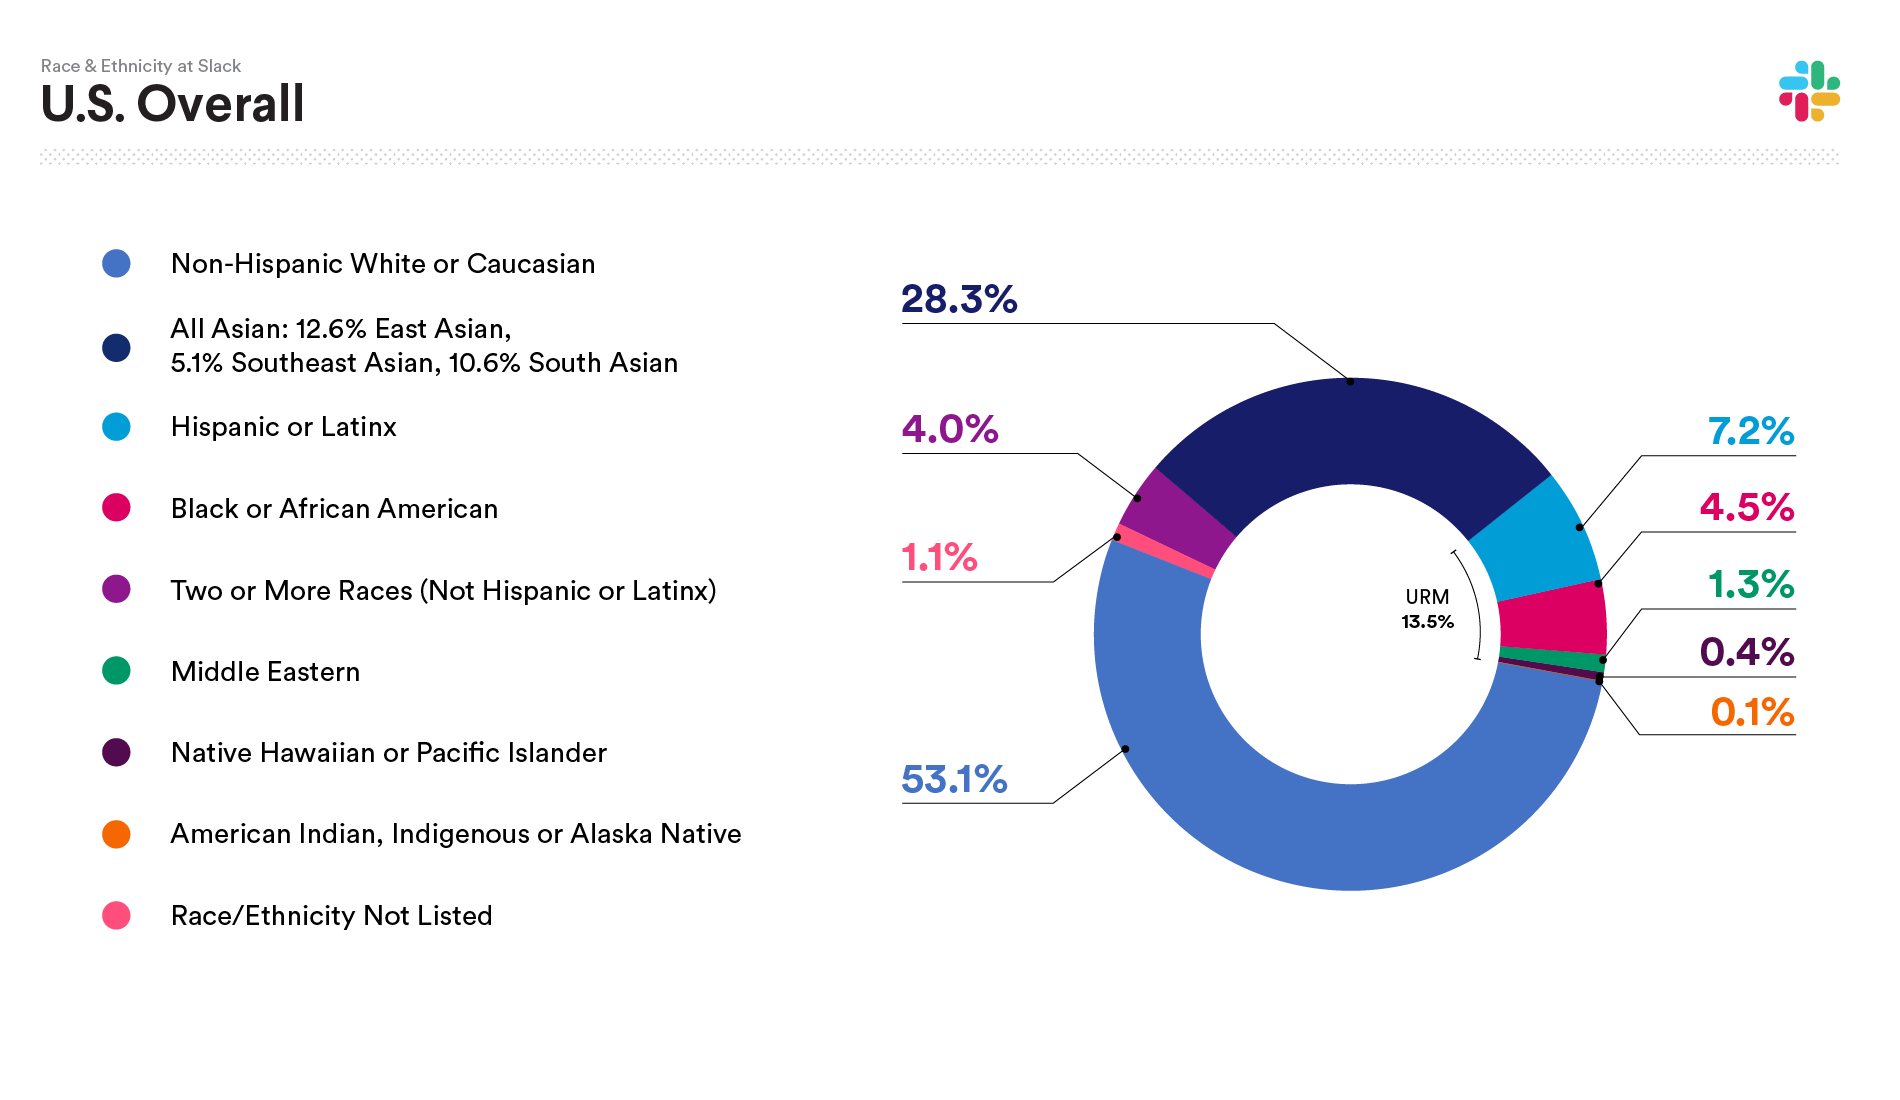 2020 Slack data on U.S. Race and Ethnicity Overall: Non-Hispanic White or Caucasian 53.1%; All Asian: 28.3%; Hispanic or Latinx 7.2%; Black or African American 4.5%; Two or more races (not Hispanic or Latinx) 4.0%; Middle Eastern 1.3%; Native Hawaiian or Pacific Islander 0.4%; American Indian, Indigenous or Alaska Native 0.1%; Race/Ethnicity not listed 1.1%